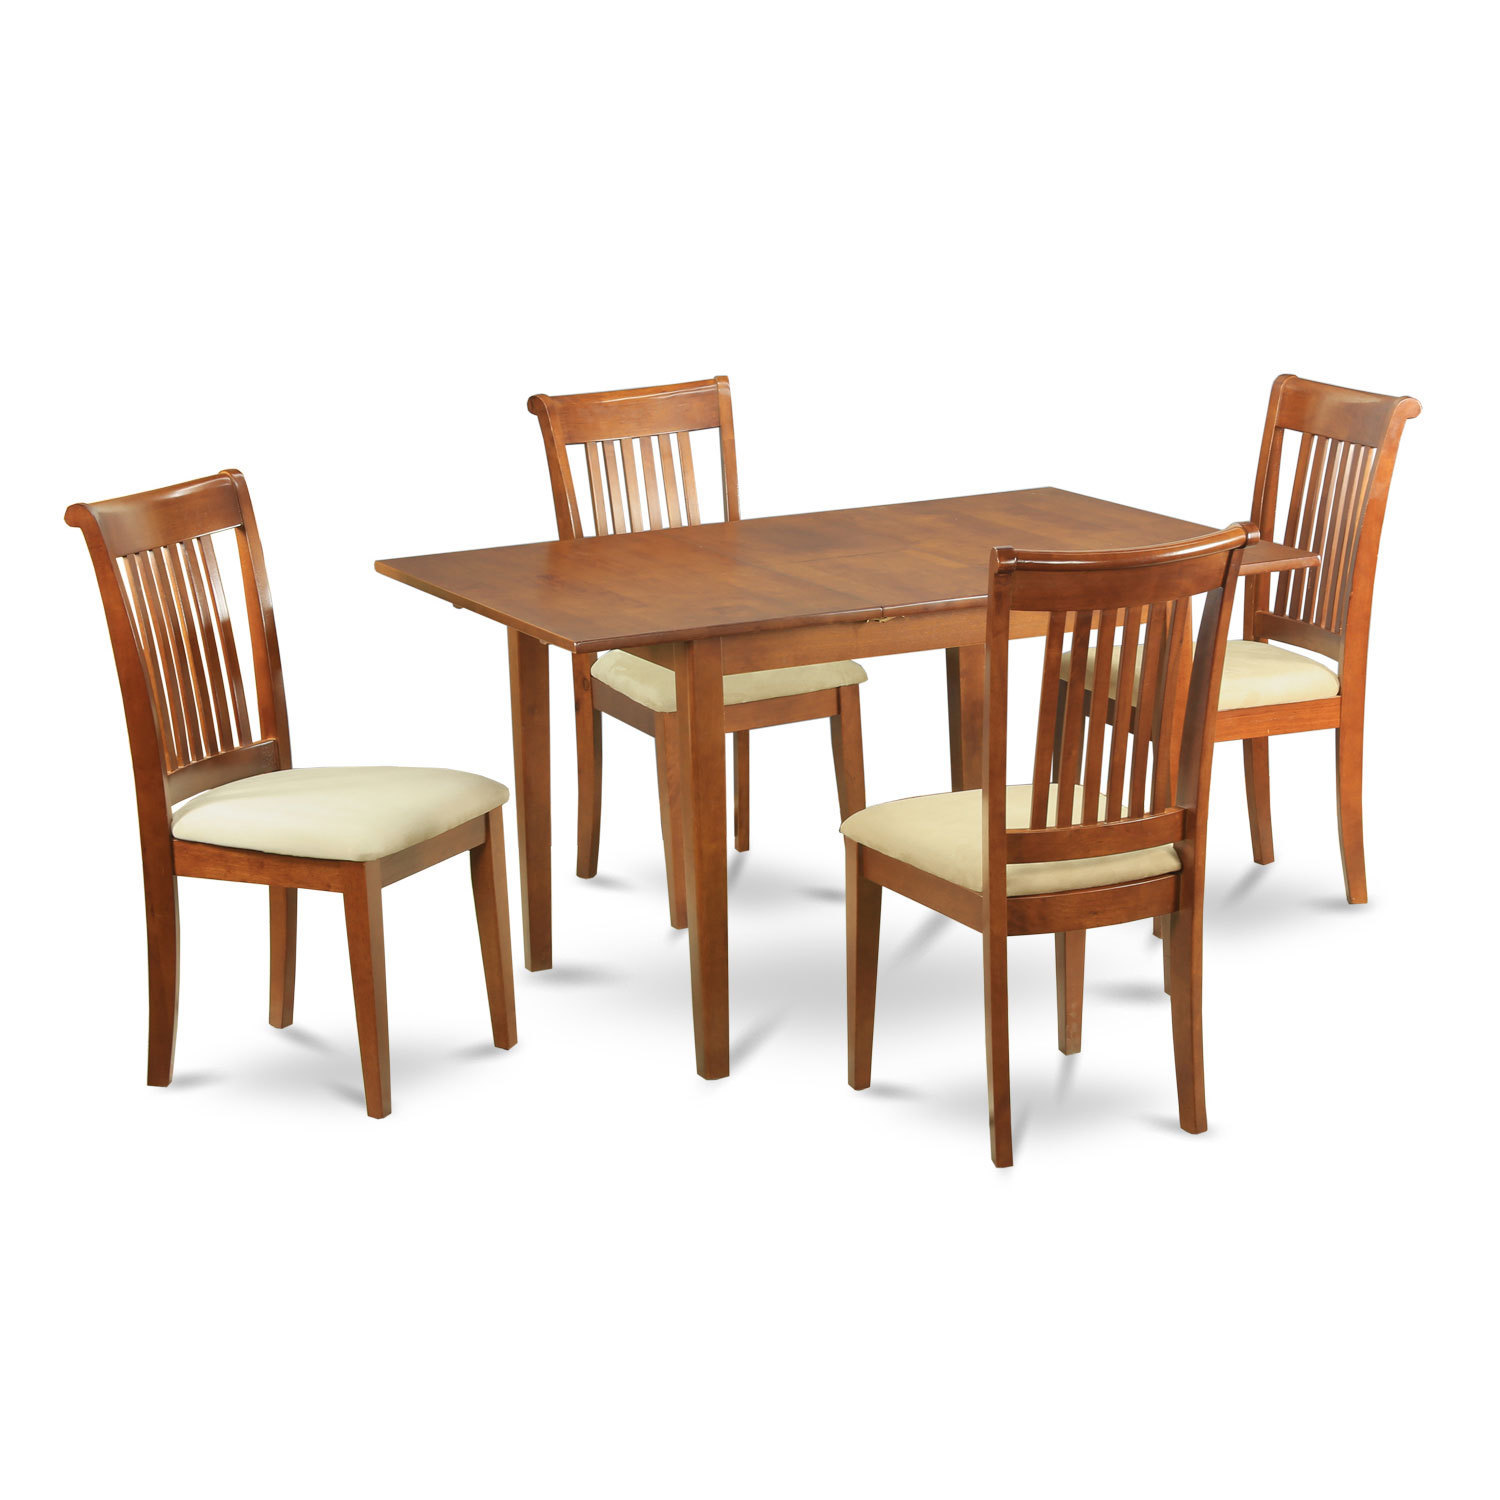 4 Chairs In Dining Room: Small Dinette Set Design